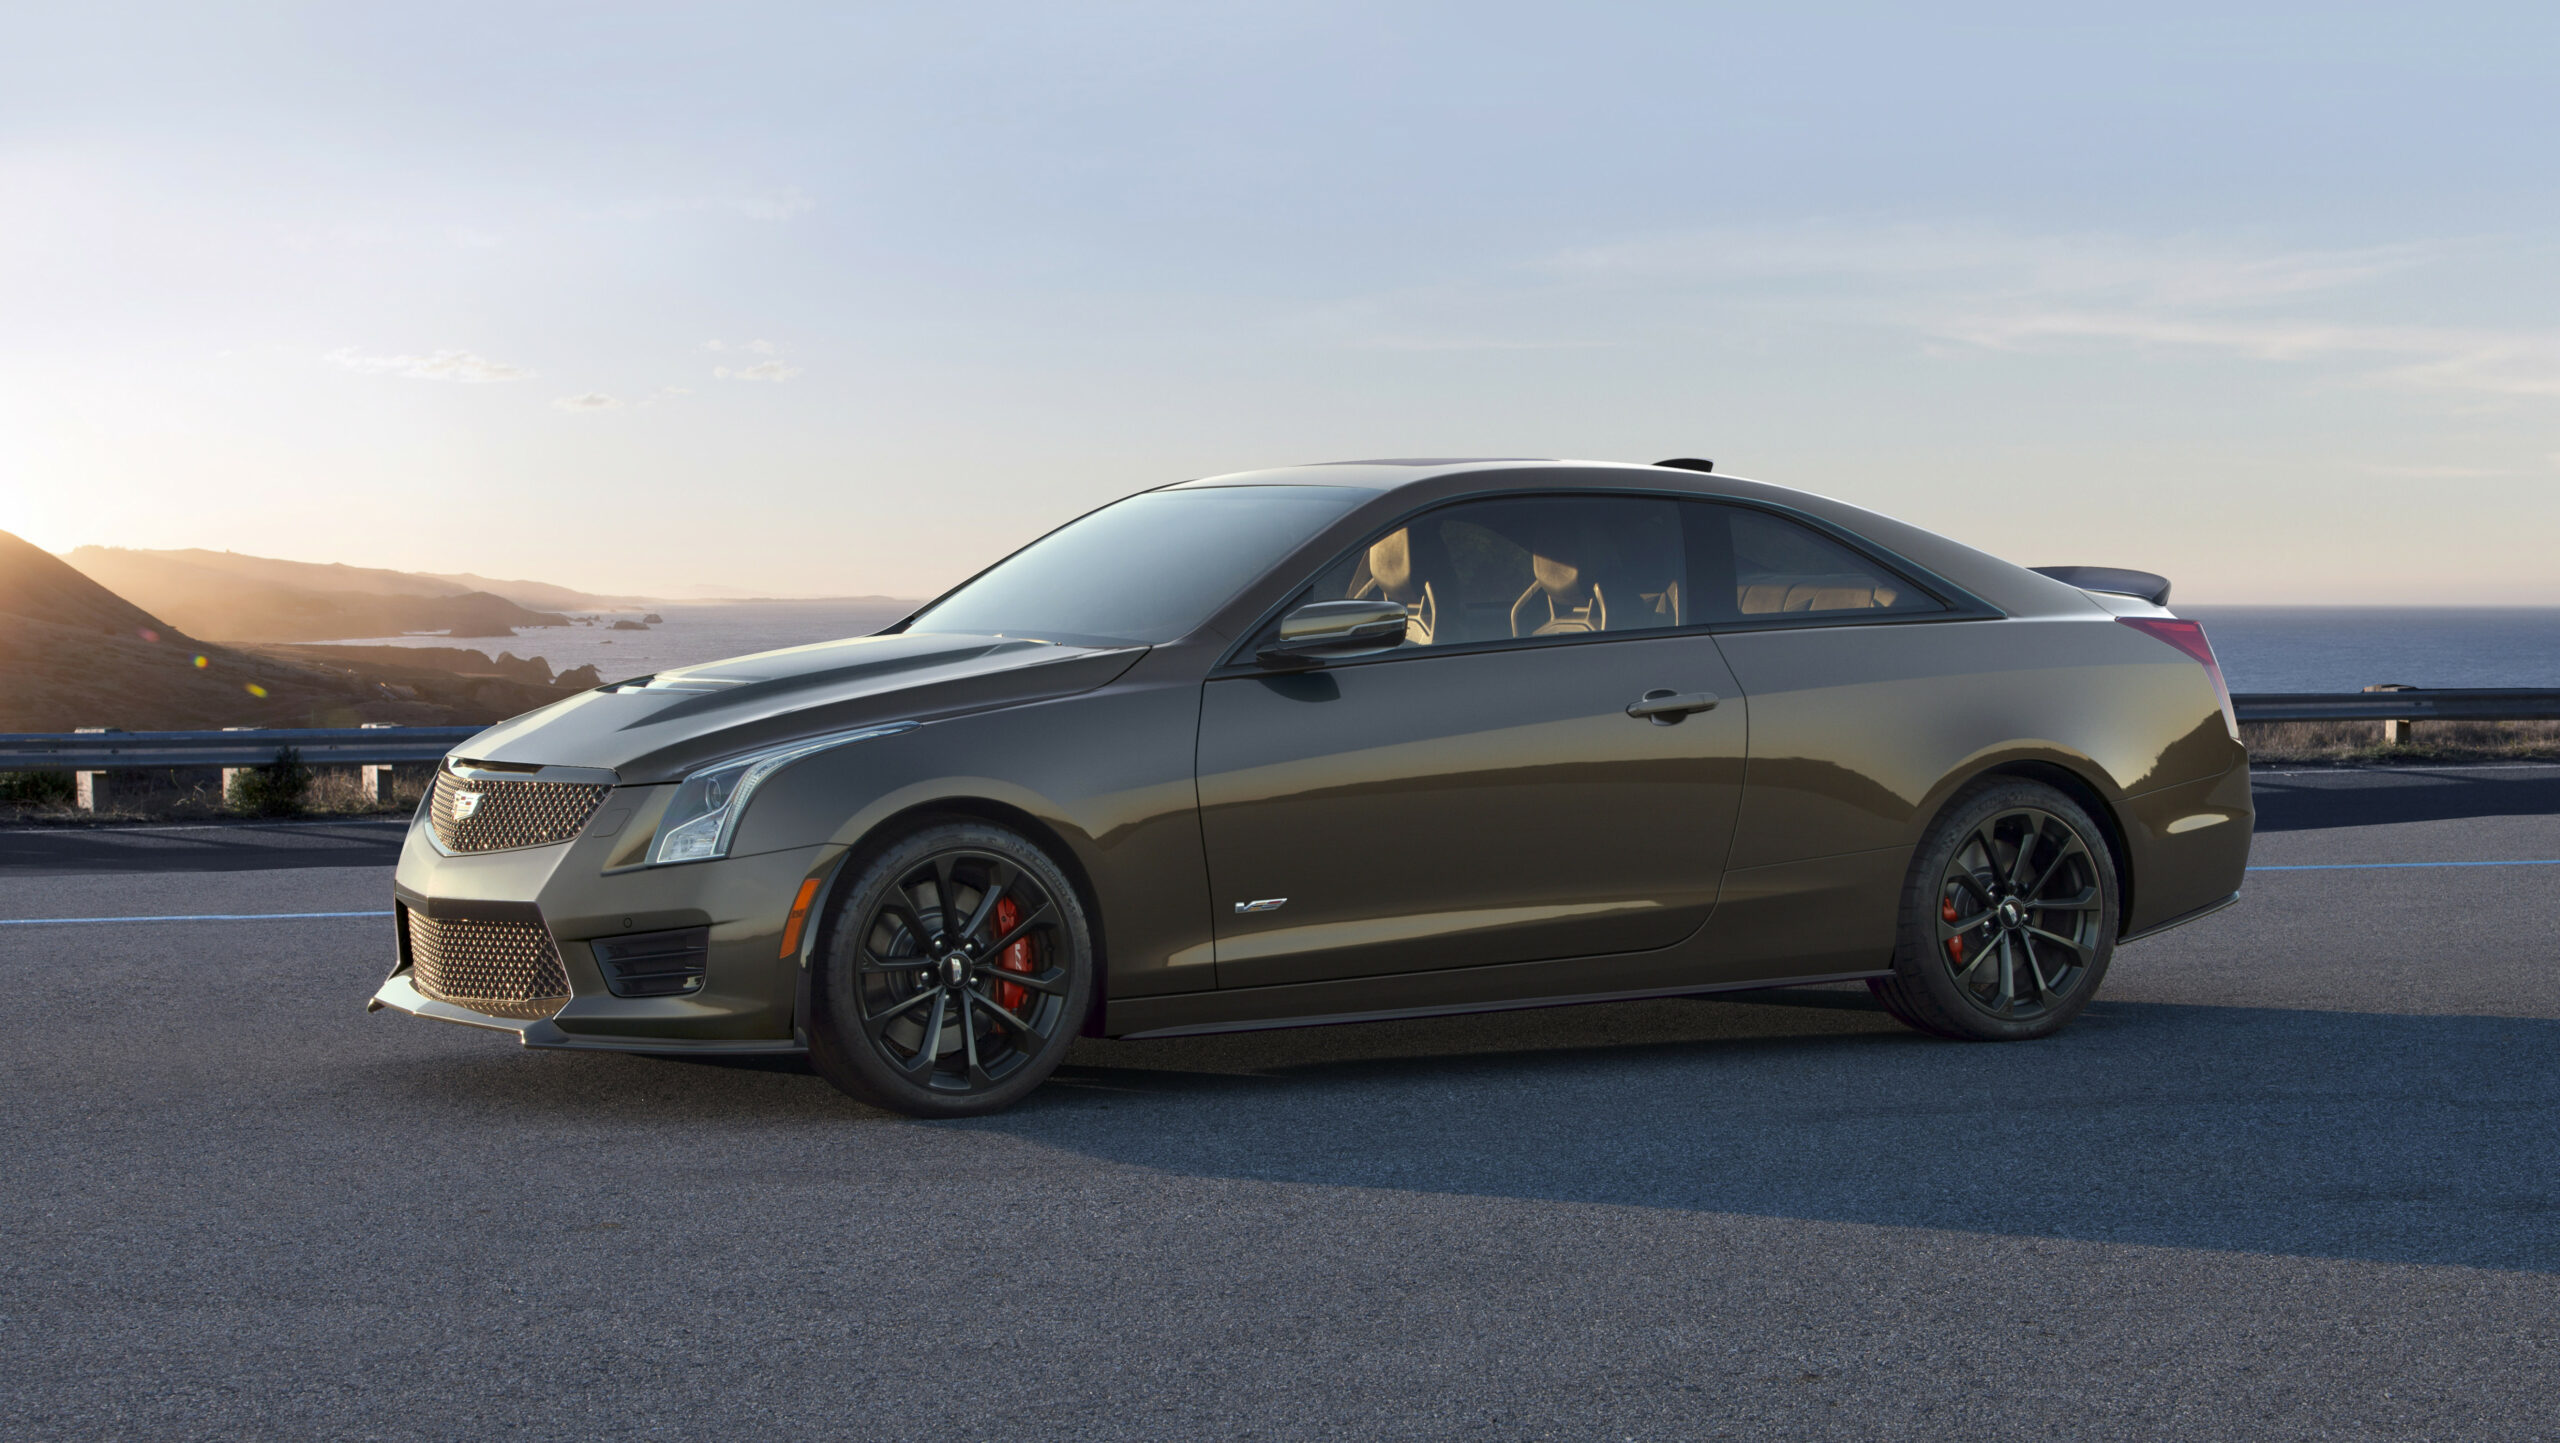 Cadillac introduces the 8 V-Series Pedestal Edition - 2020 cadillac v coupe